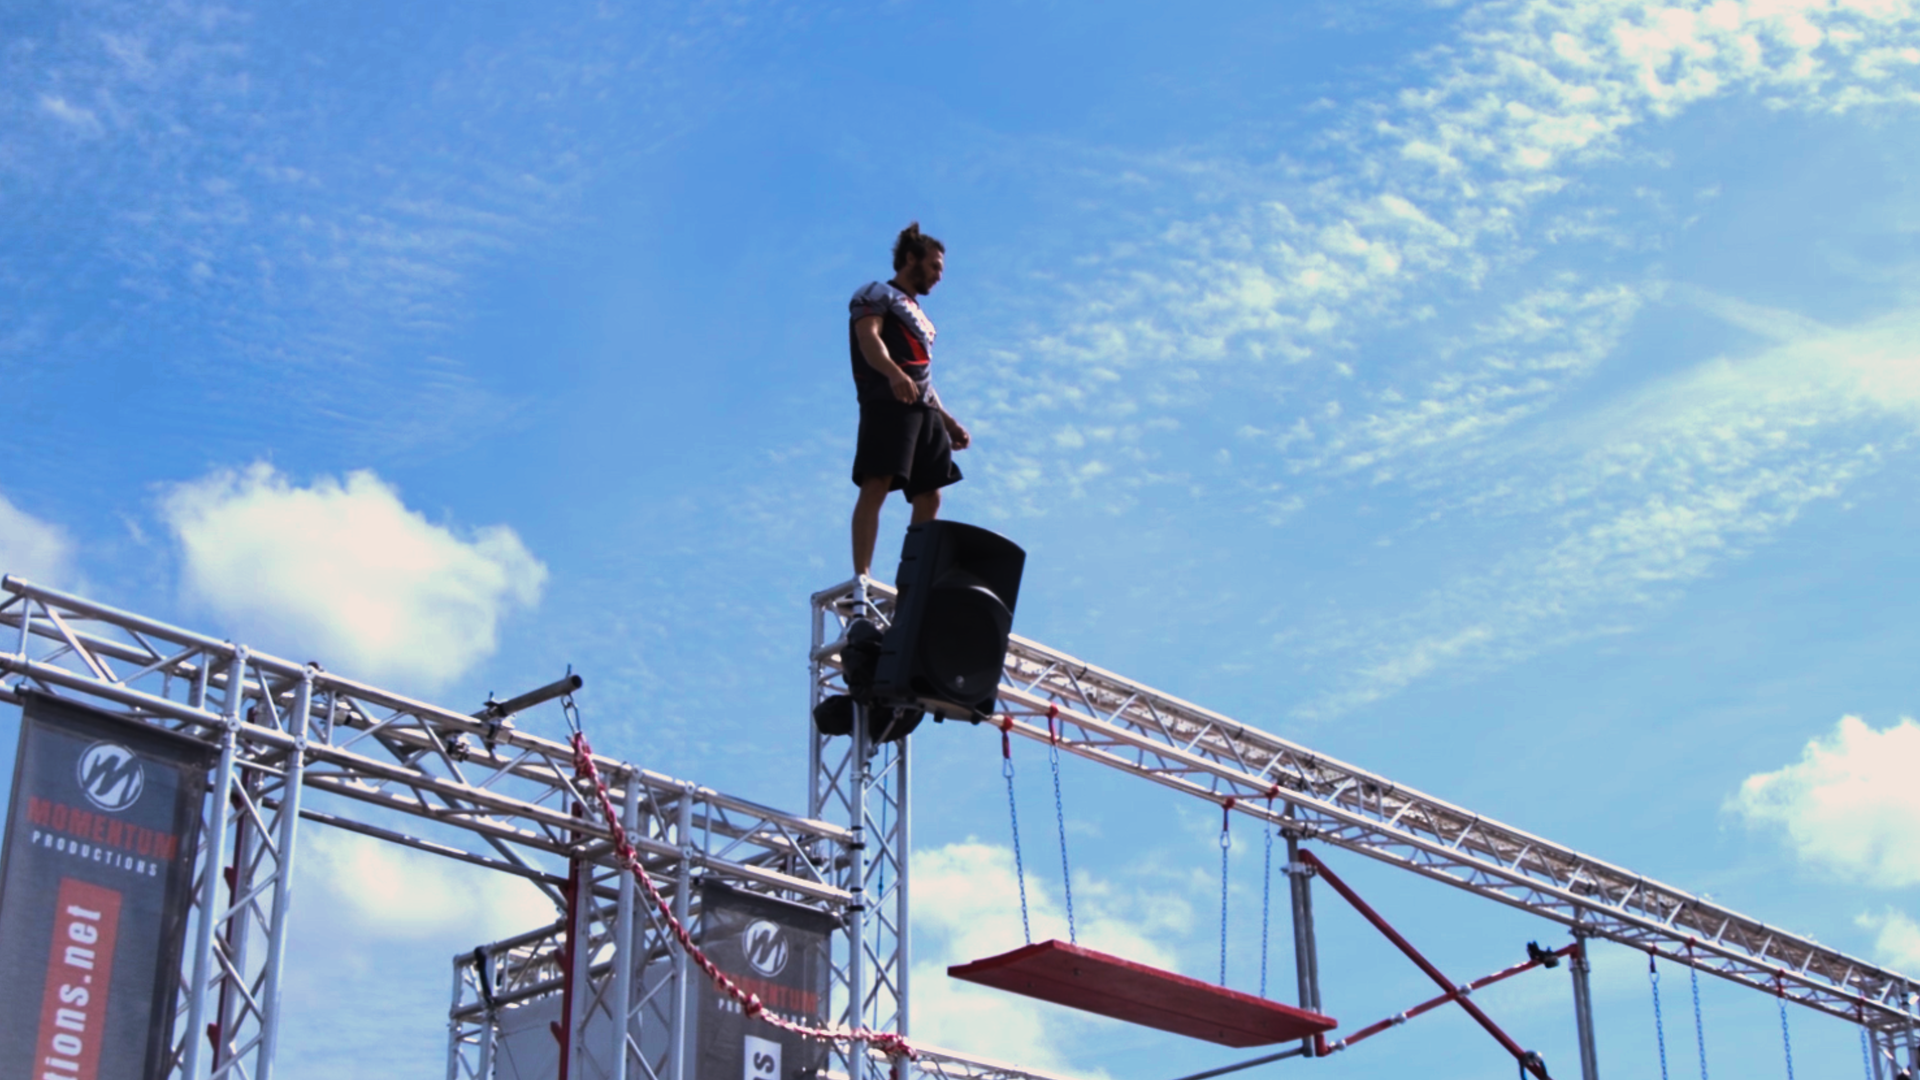 Momentum Productions - Stunt Shows and Strolling Acts